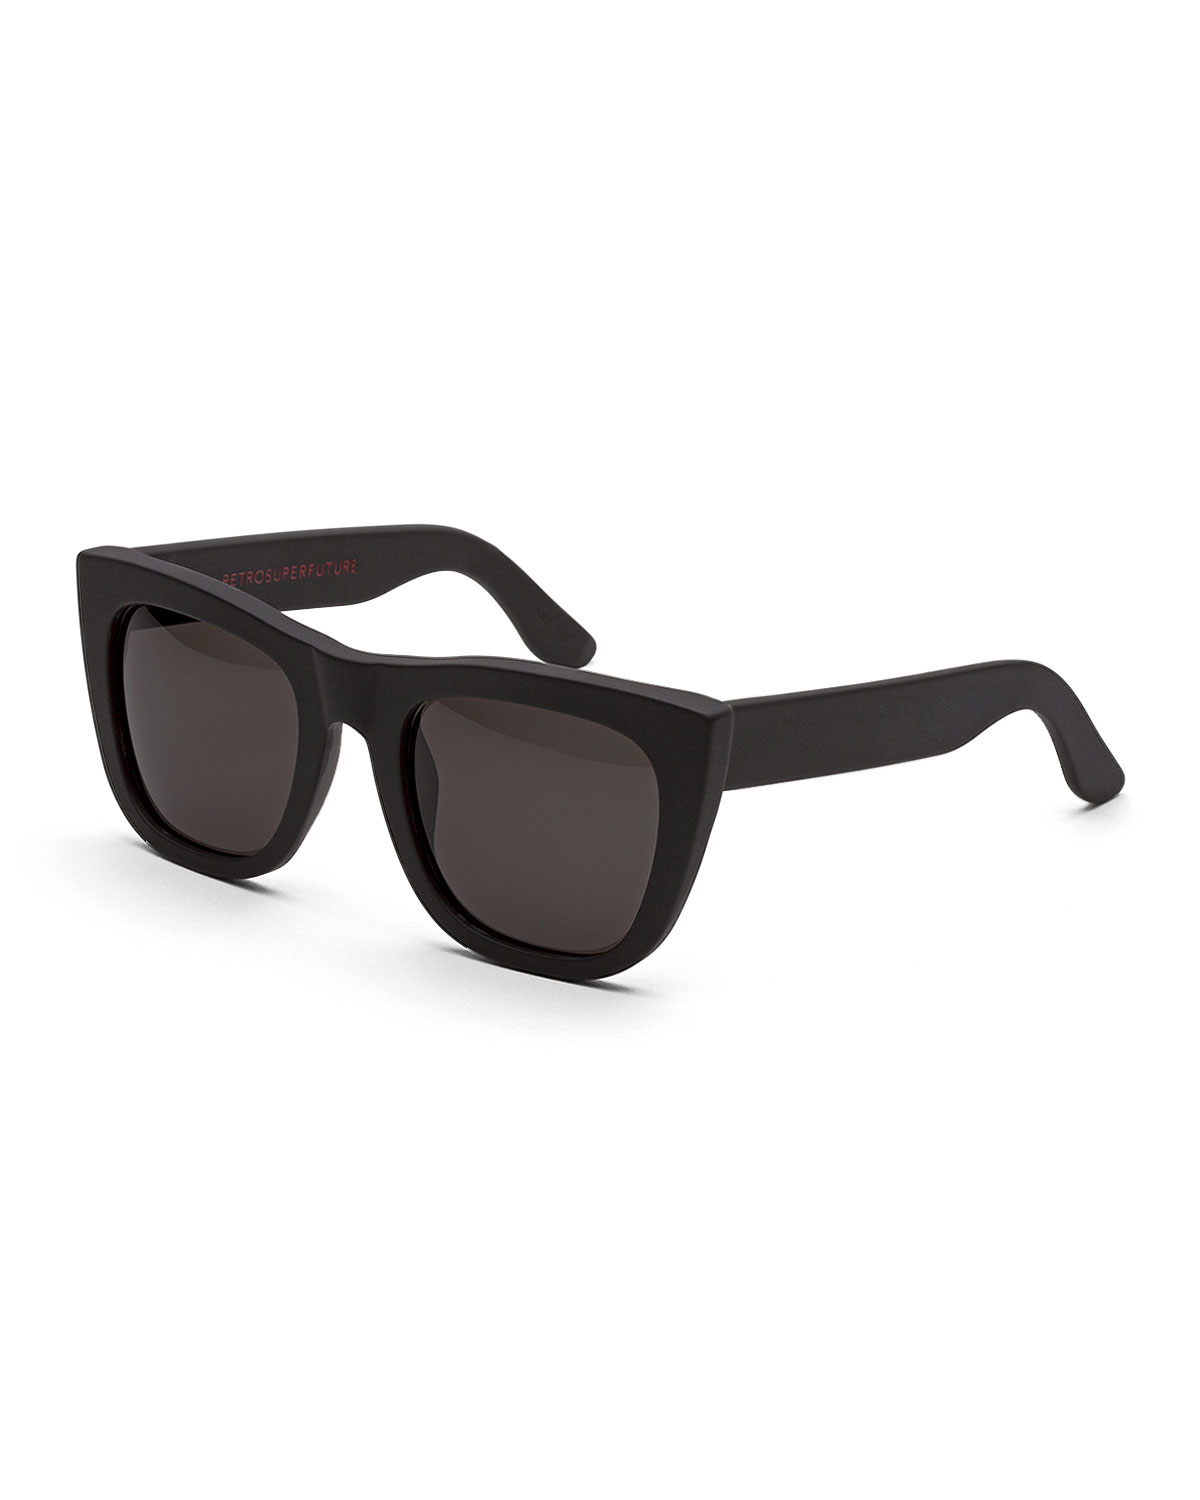 Thick Frame Glasses Black : Retrosuperfuture Gals Thick-frame Sunglasses in Black Lyst